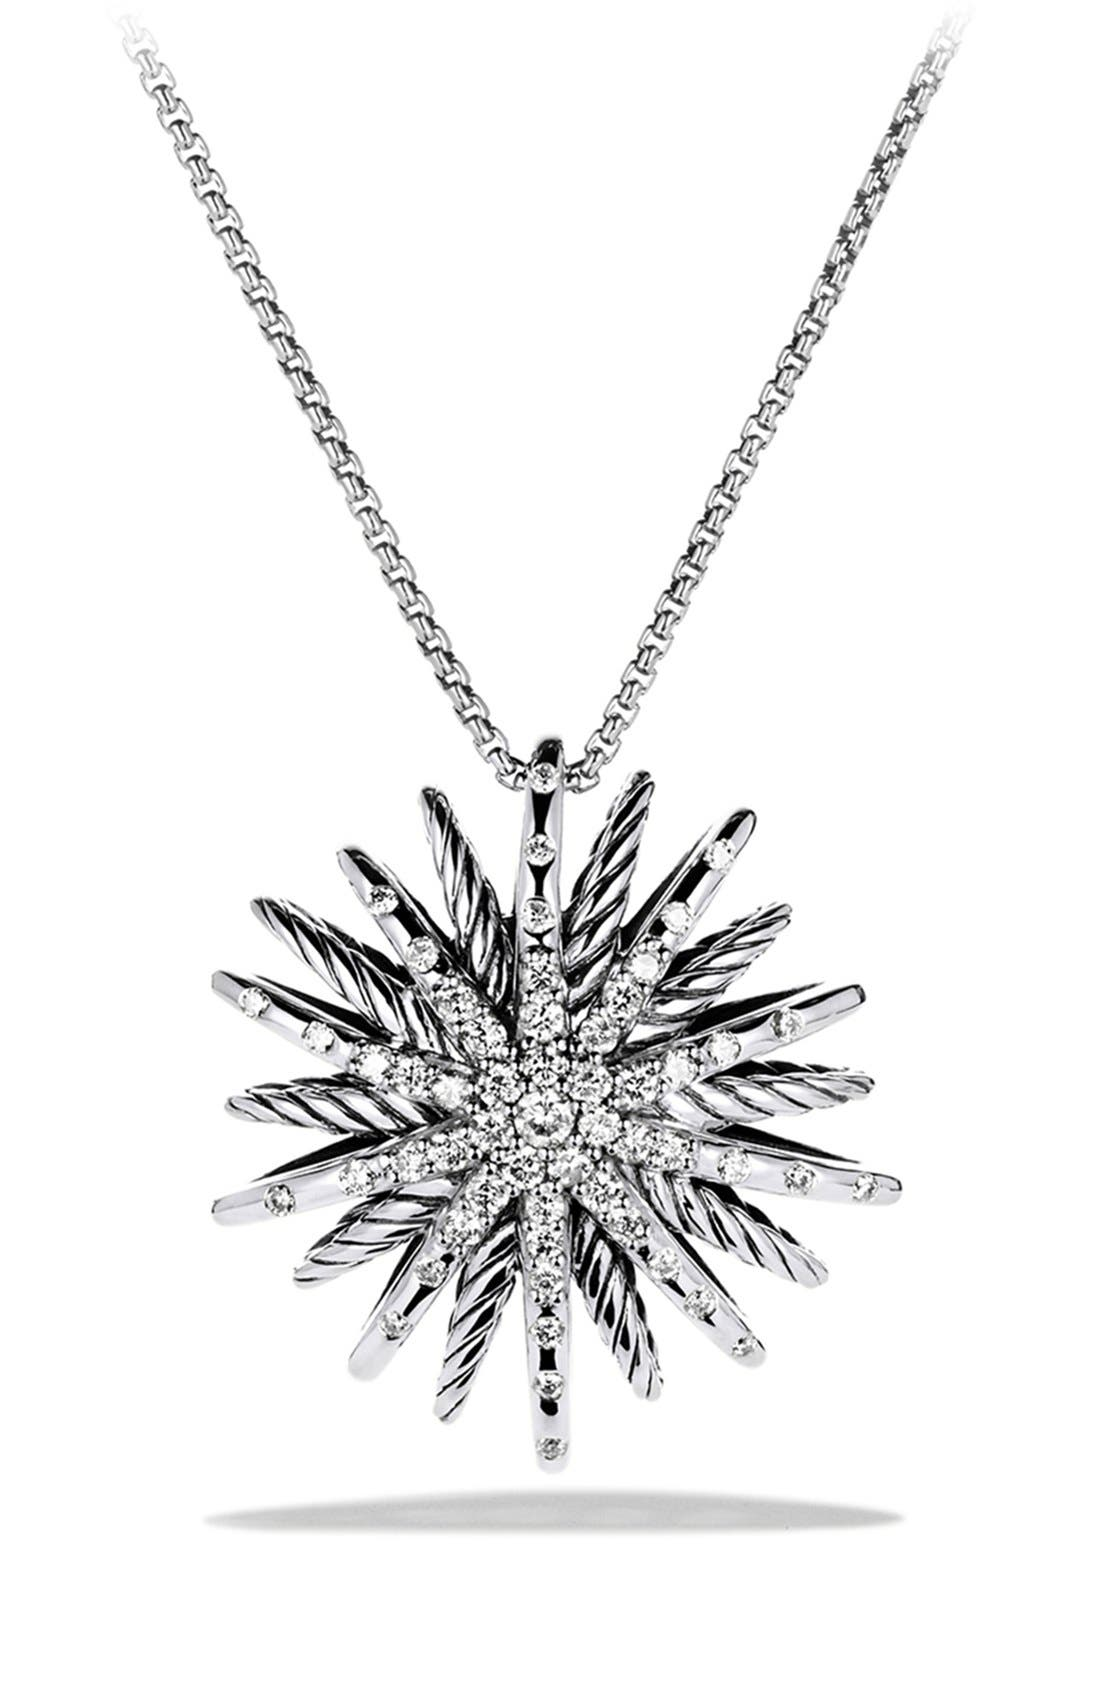 David Yurman 'Starburst' Medium Pendant with Diamonds on Chain